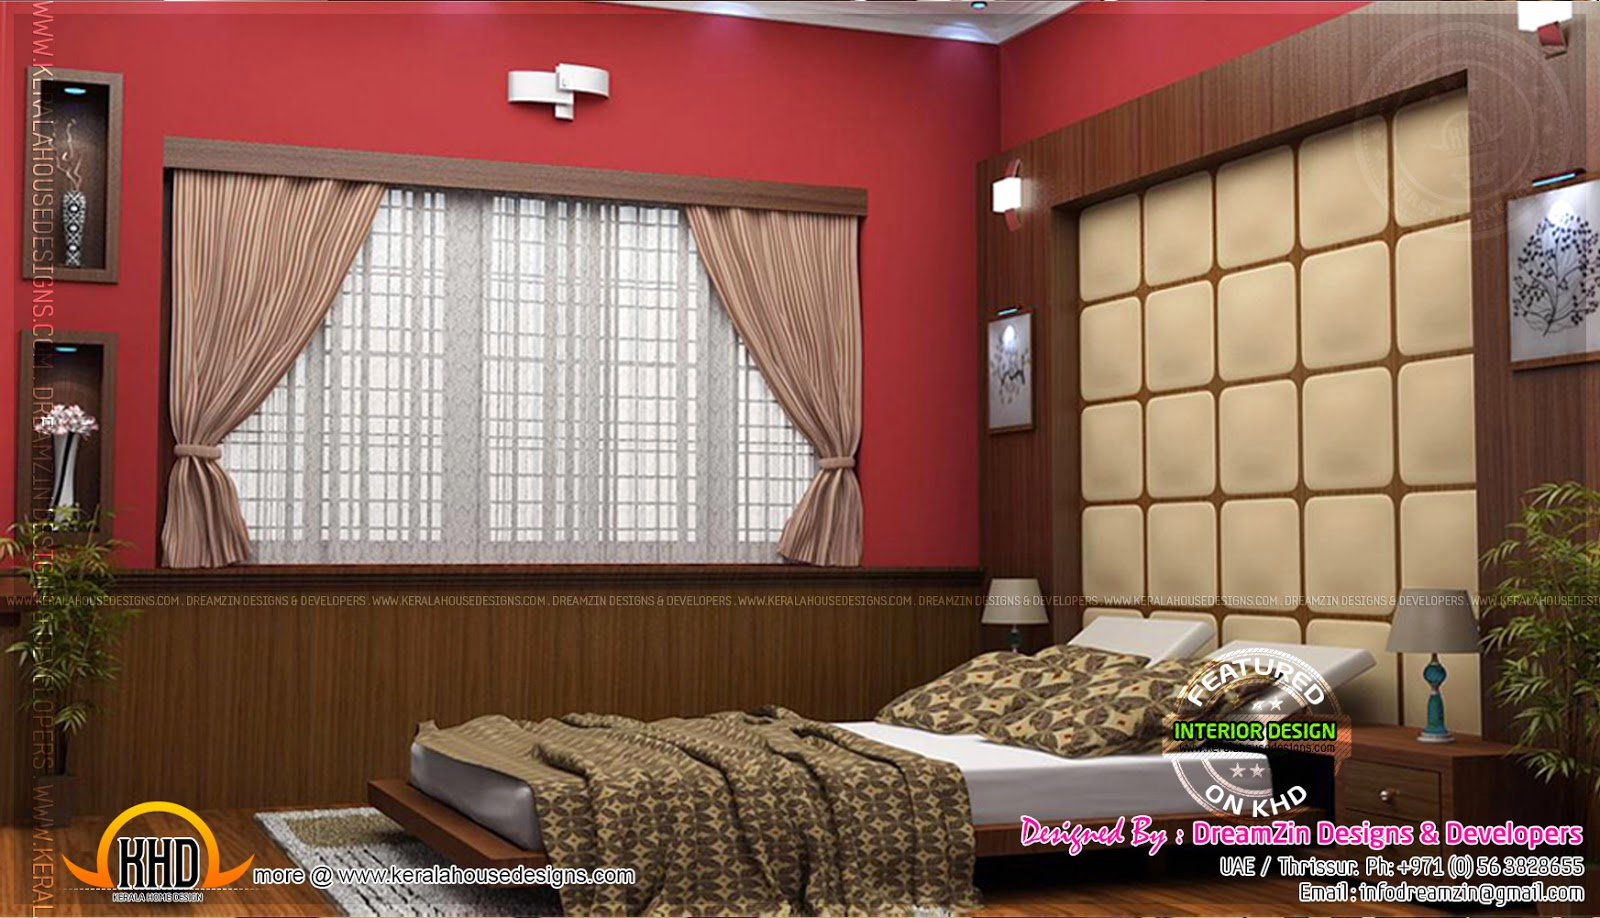 Interior designs by dreamzin designs uae and kerala for Interior designs in kerala